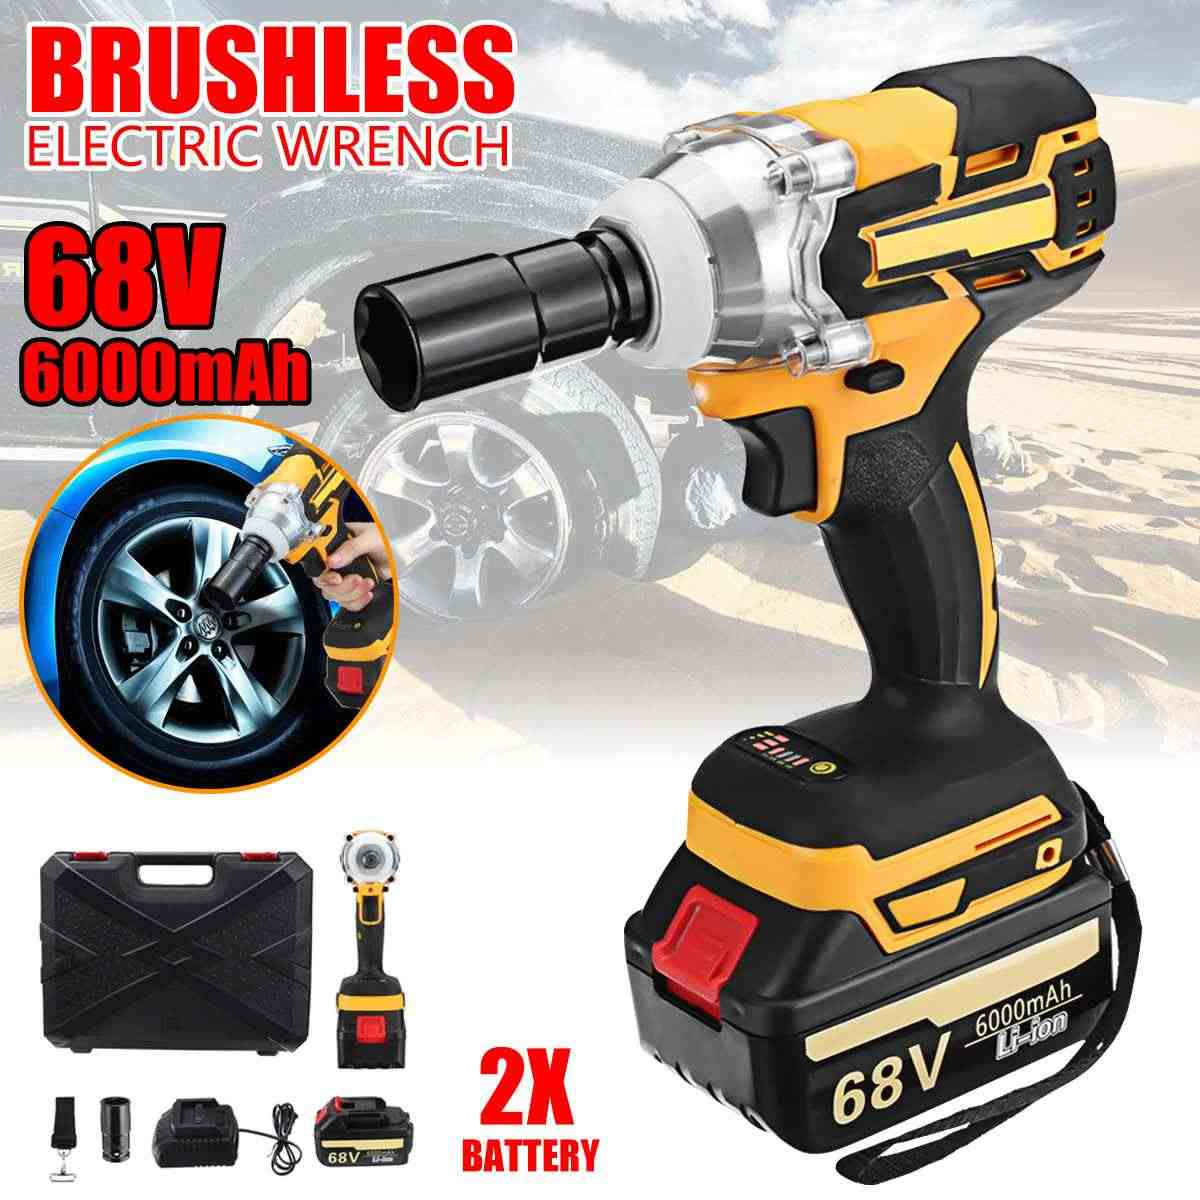 68V 6000mAh Electric Wrench 2 Batteries Brushless Cordless Drive 380 N.M Hand Drill Household Car Socket Electric Impact Wrench